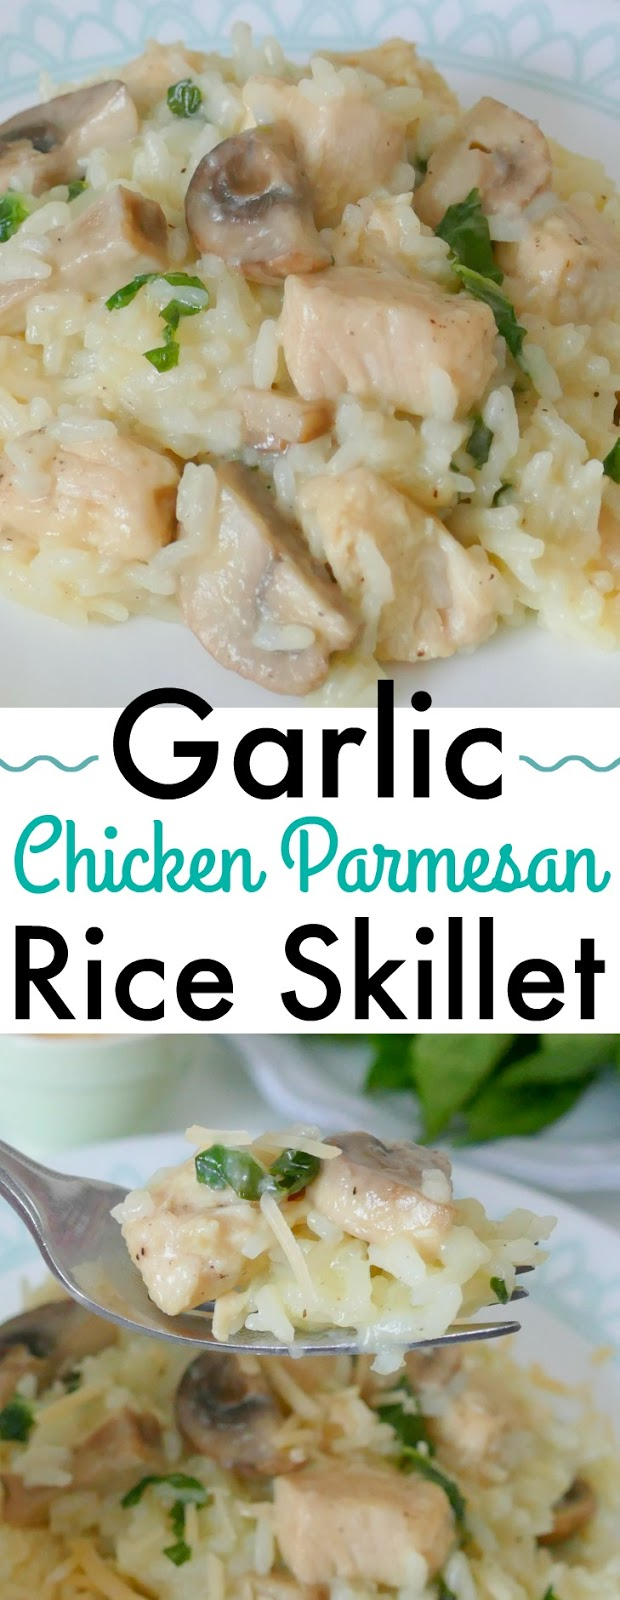 This easy and delicious weeknight dinner idea is ready in less than 30 minutes! It combines chicken breast, jasmine rice, shredded parmesan cheese, white mushrooms and basil for a tasty one pan meal!